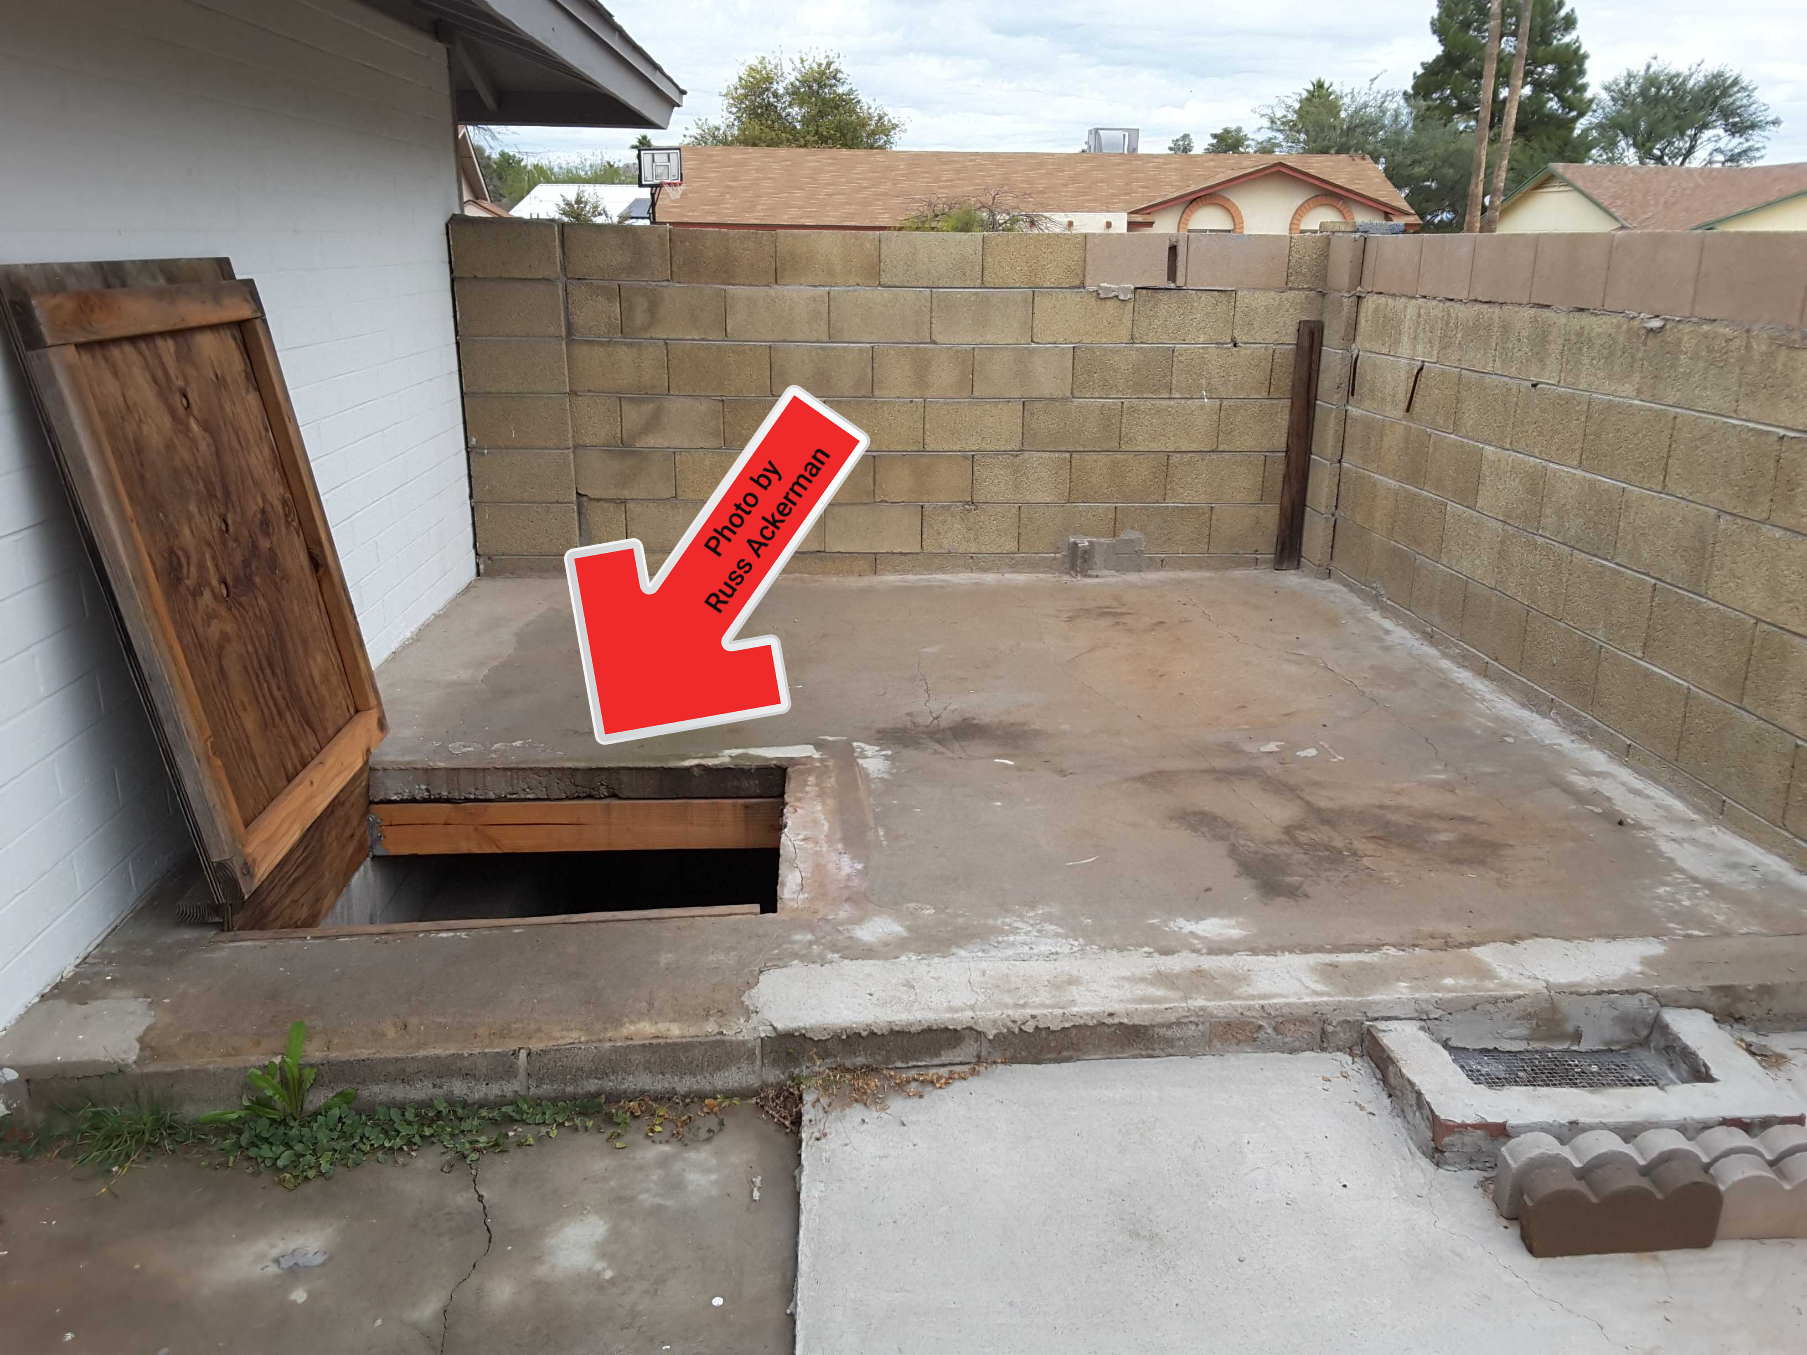 This underground storage area was built with poured concrete over a untreated wood frame. It was settling, cracking and had wood rot and termite damage. A possible collapse/life safety hazard.